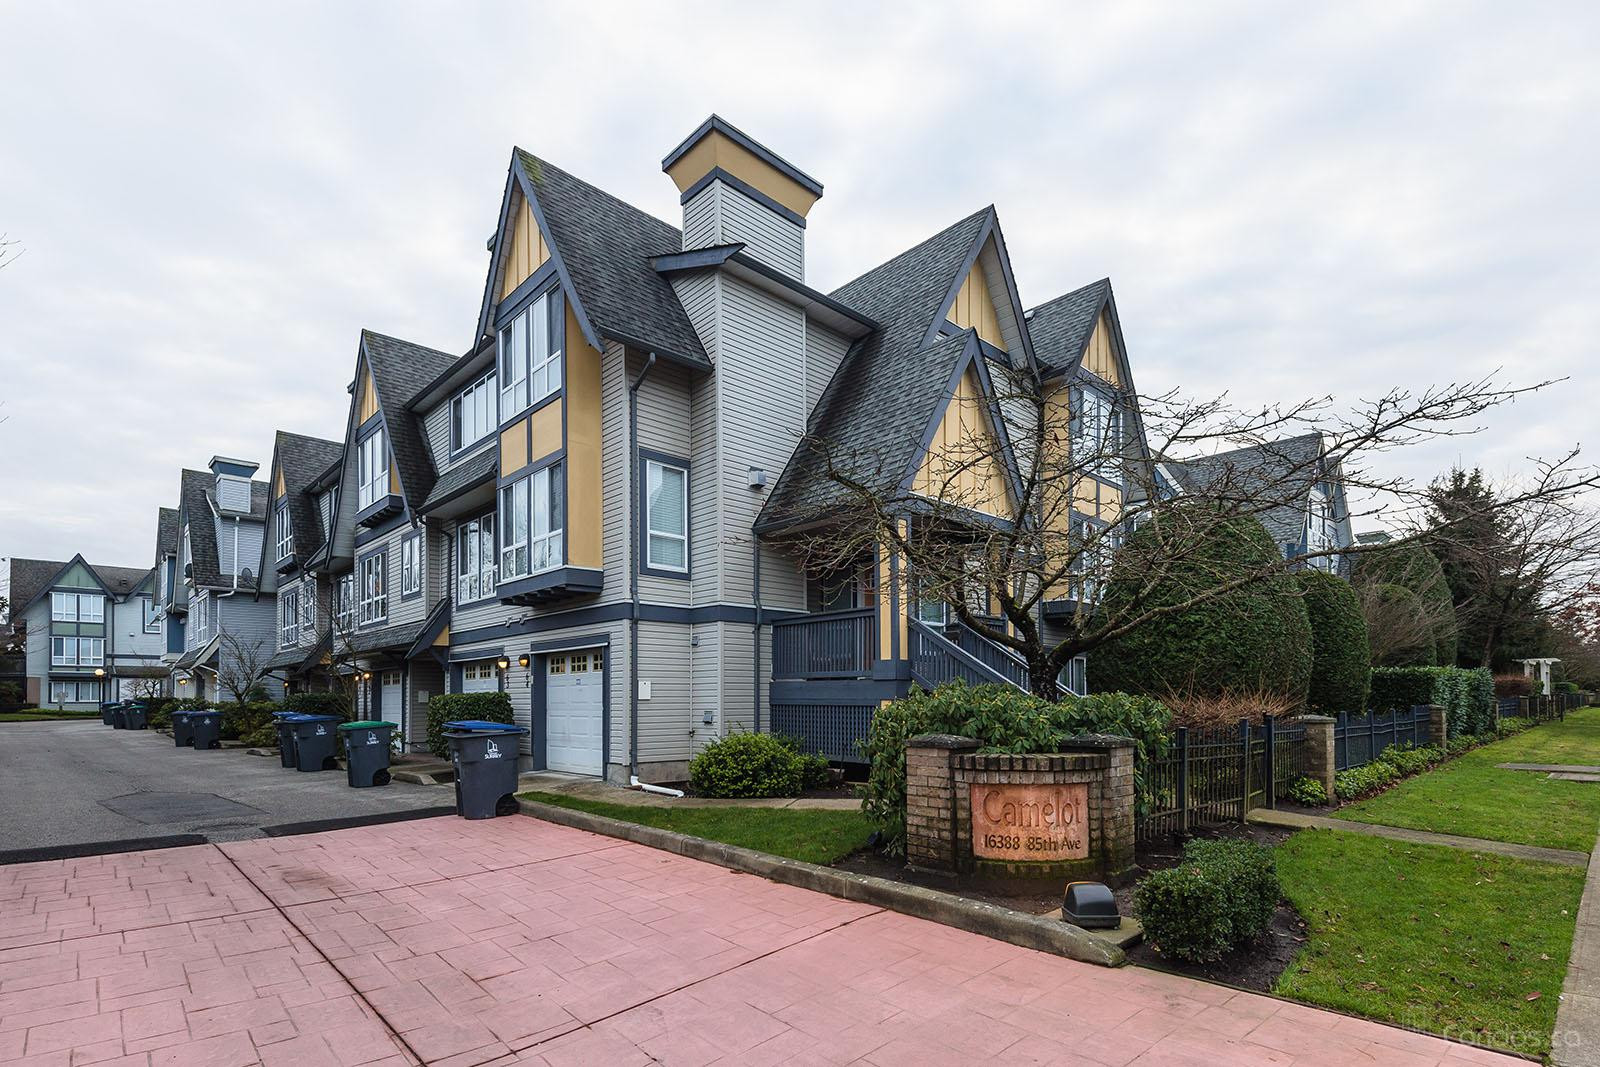 Camelot Village at 16388 85 Ave, Surrey 1